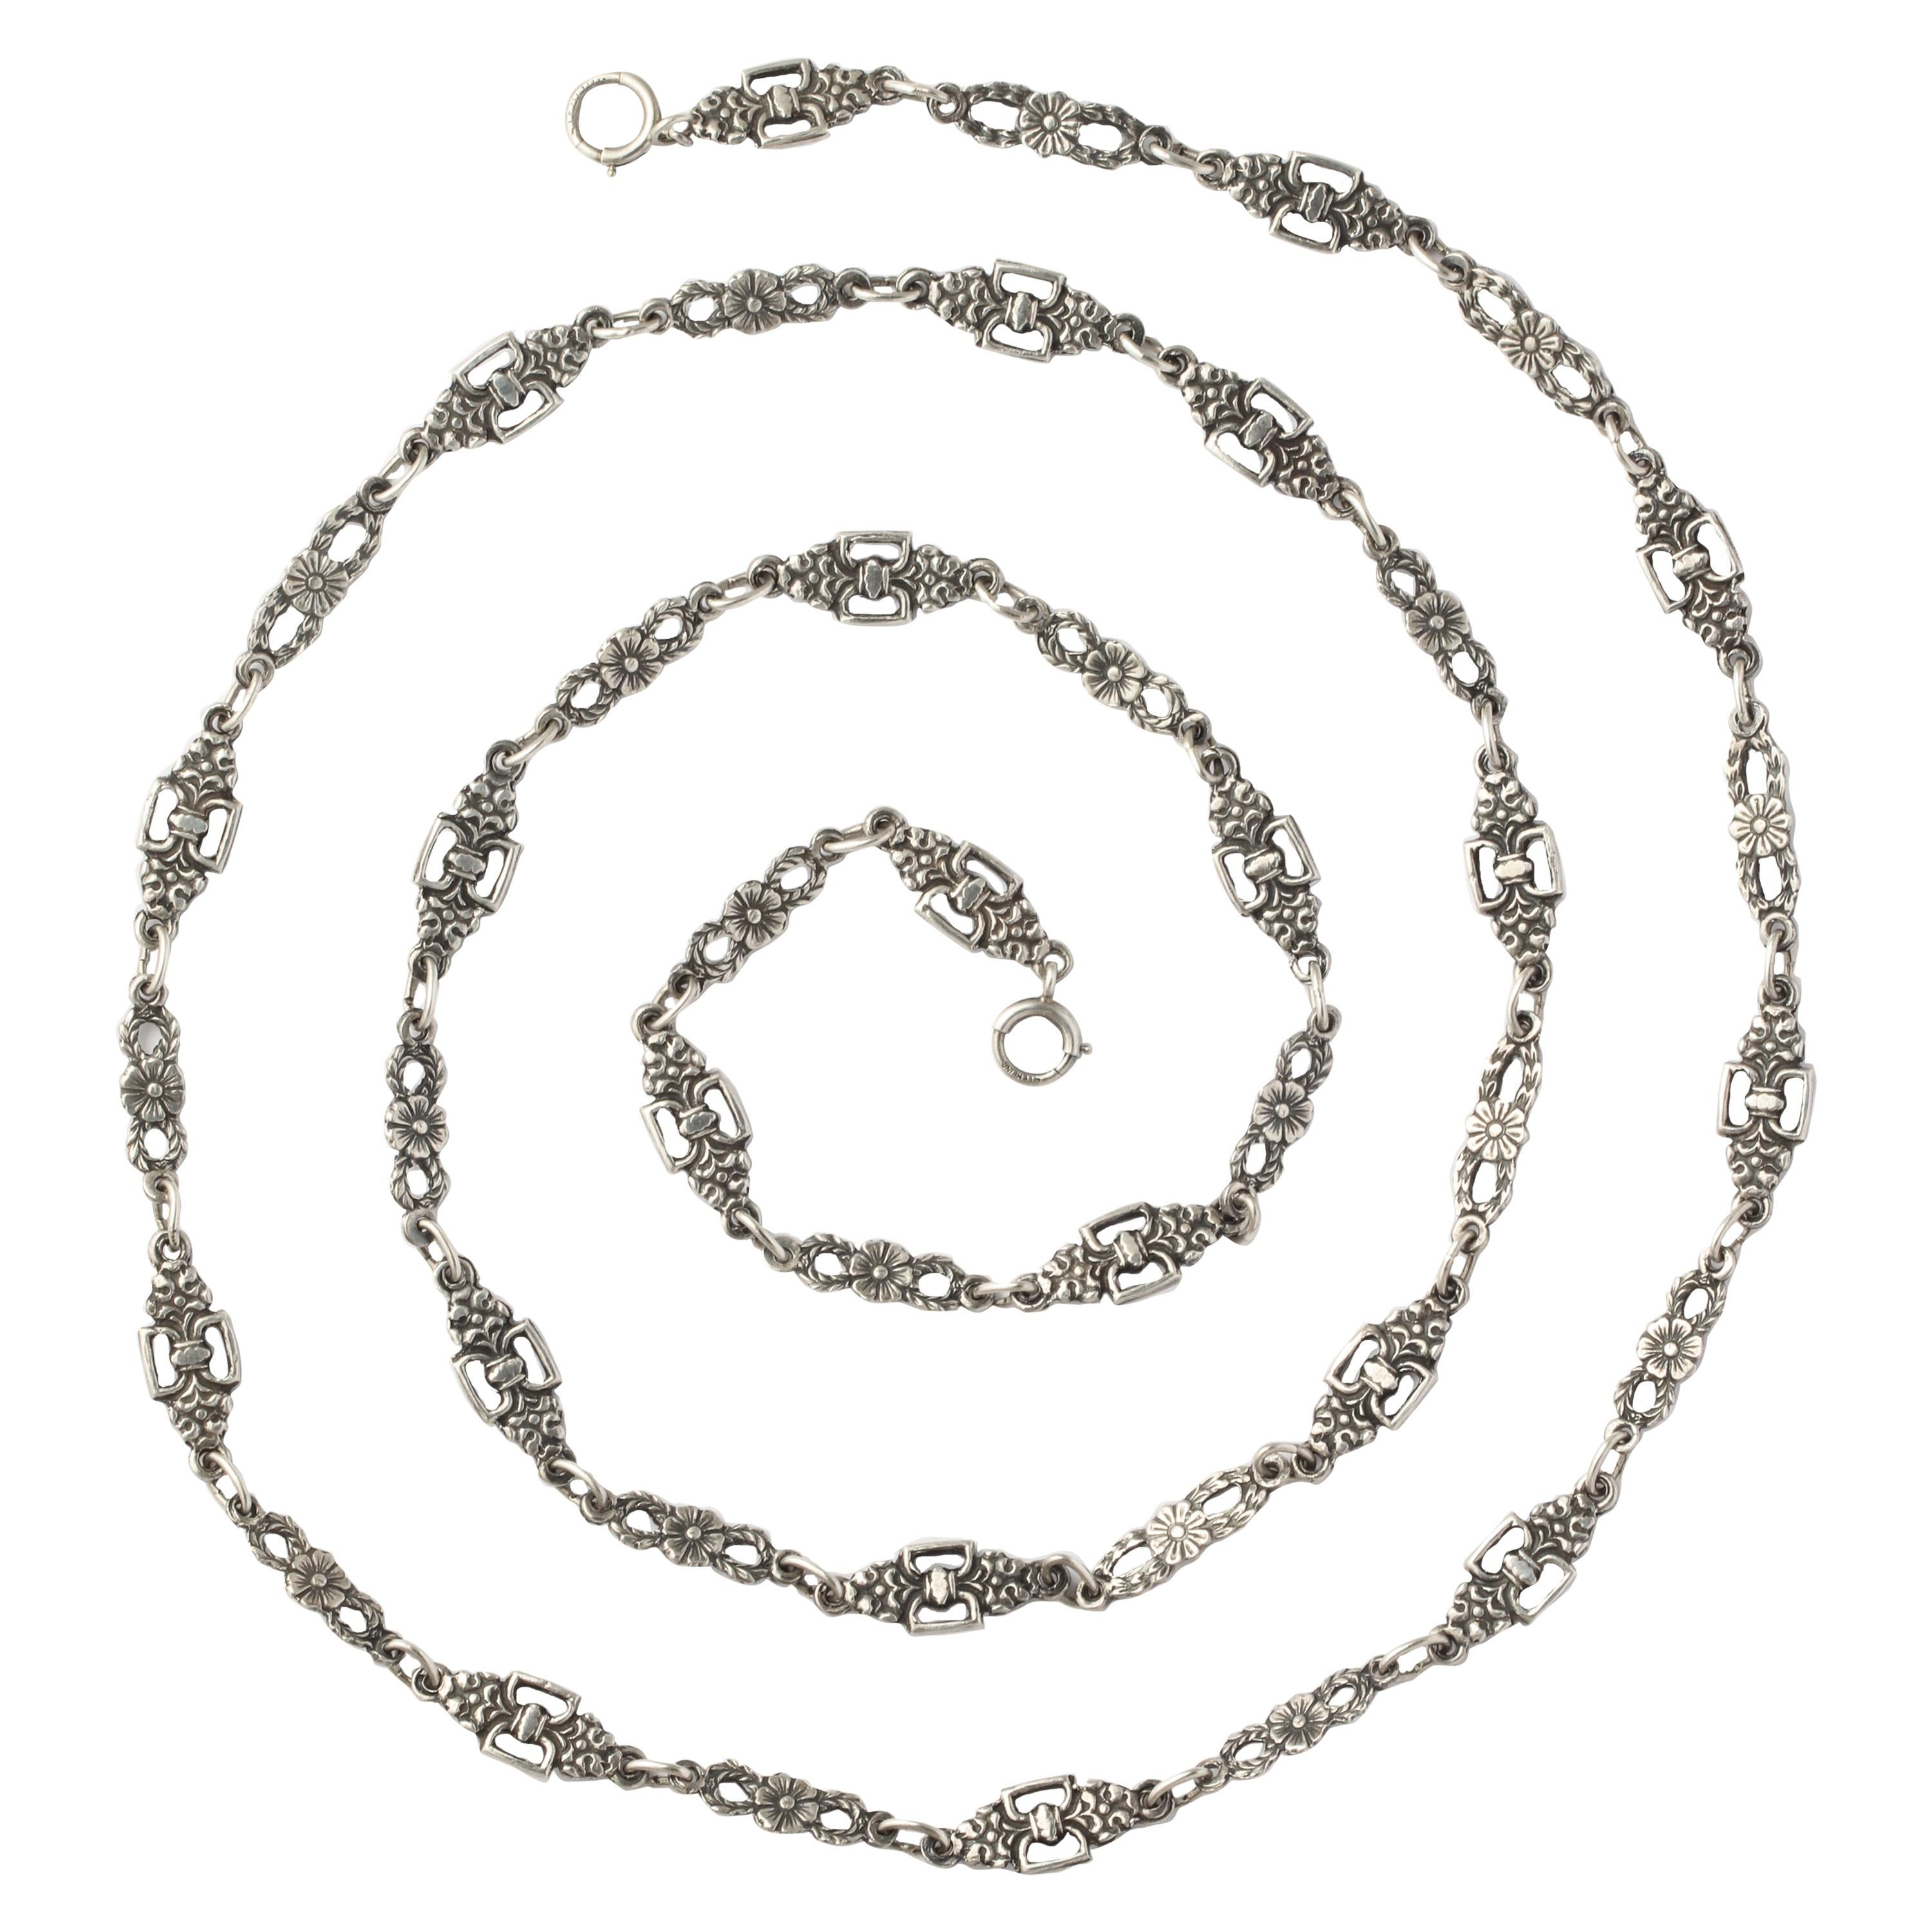 5c113efd4f73c Diamond, Vintage and Antique Necklaces - 21,367 For Sale at 1stdibs